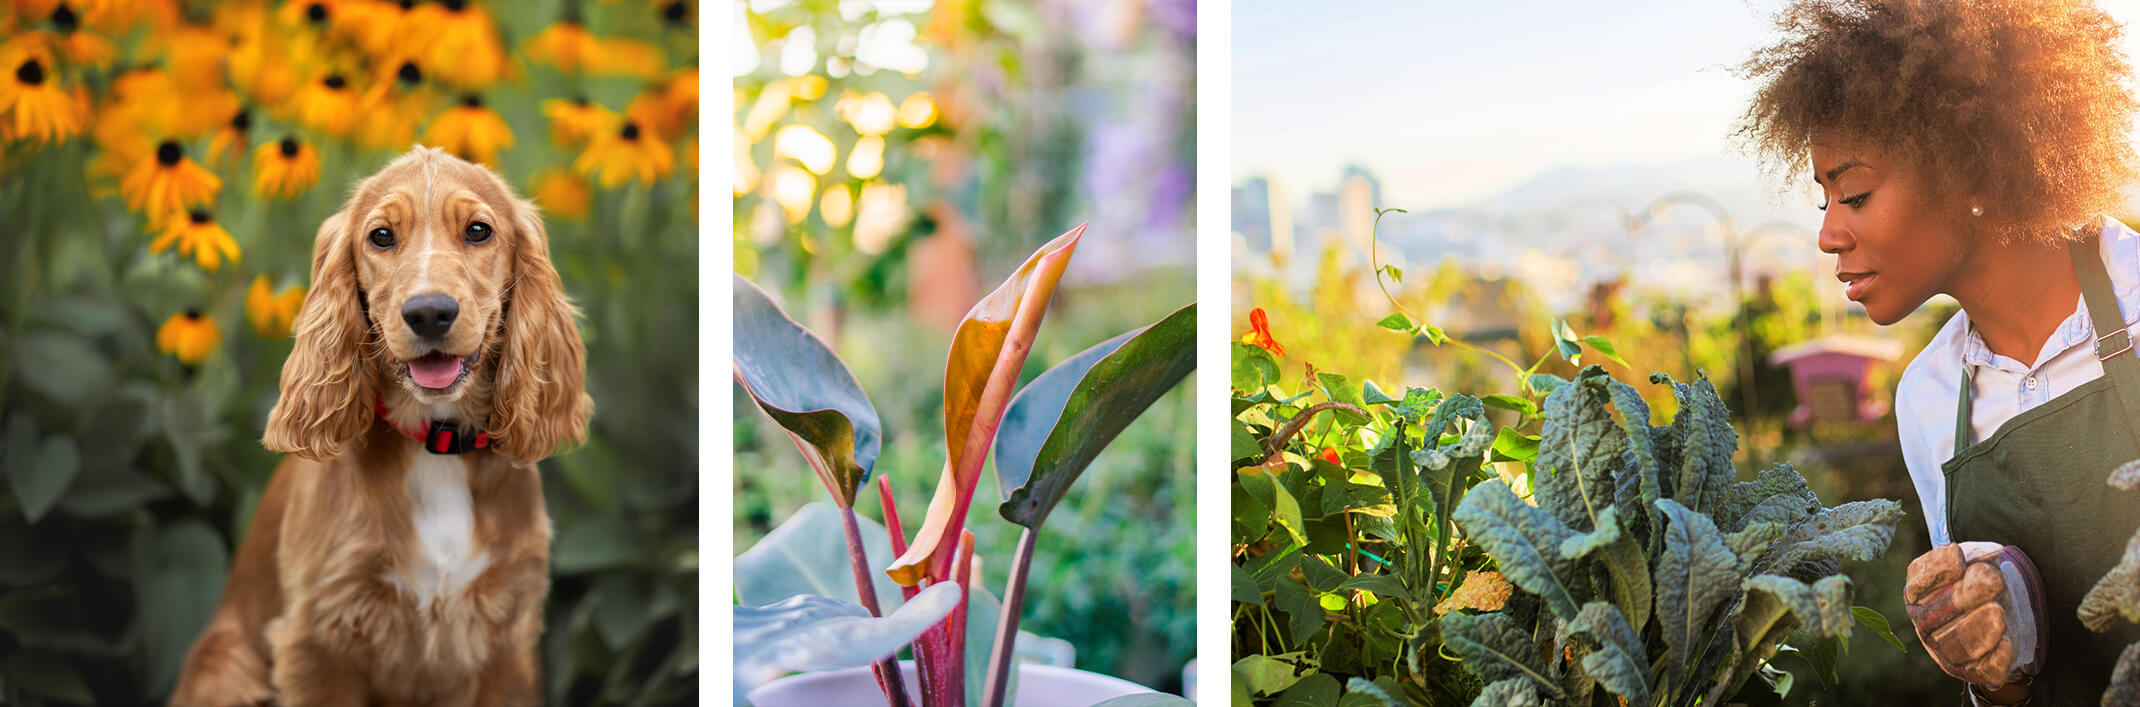 Collage: dog in garden with yellow echinacea flowers, a close up of a Bird of Paradise plant with blurred garden background, and a woman gardener admiring her vegetable garden and kale